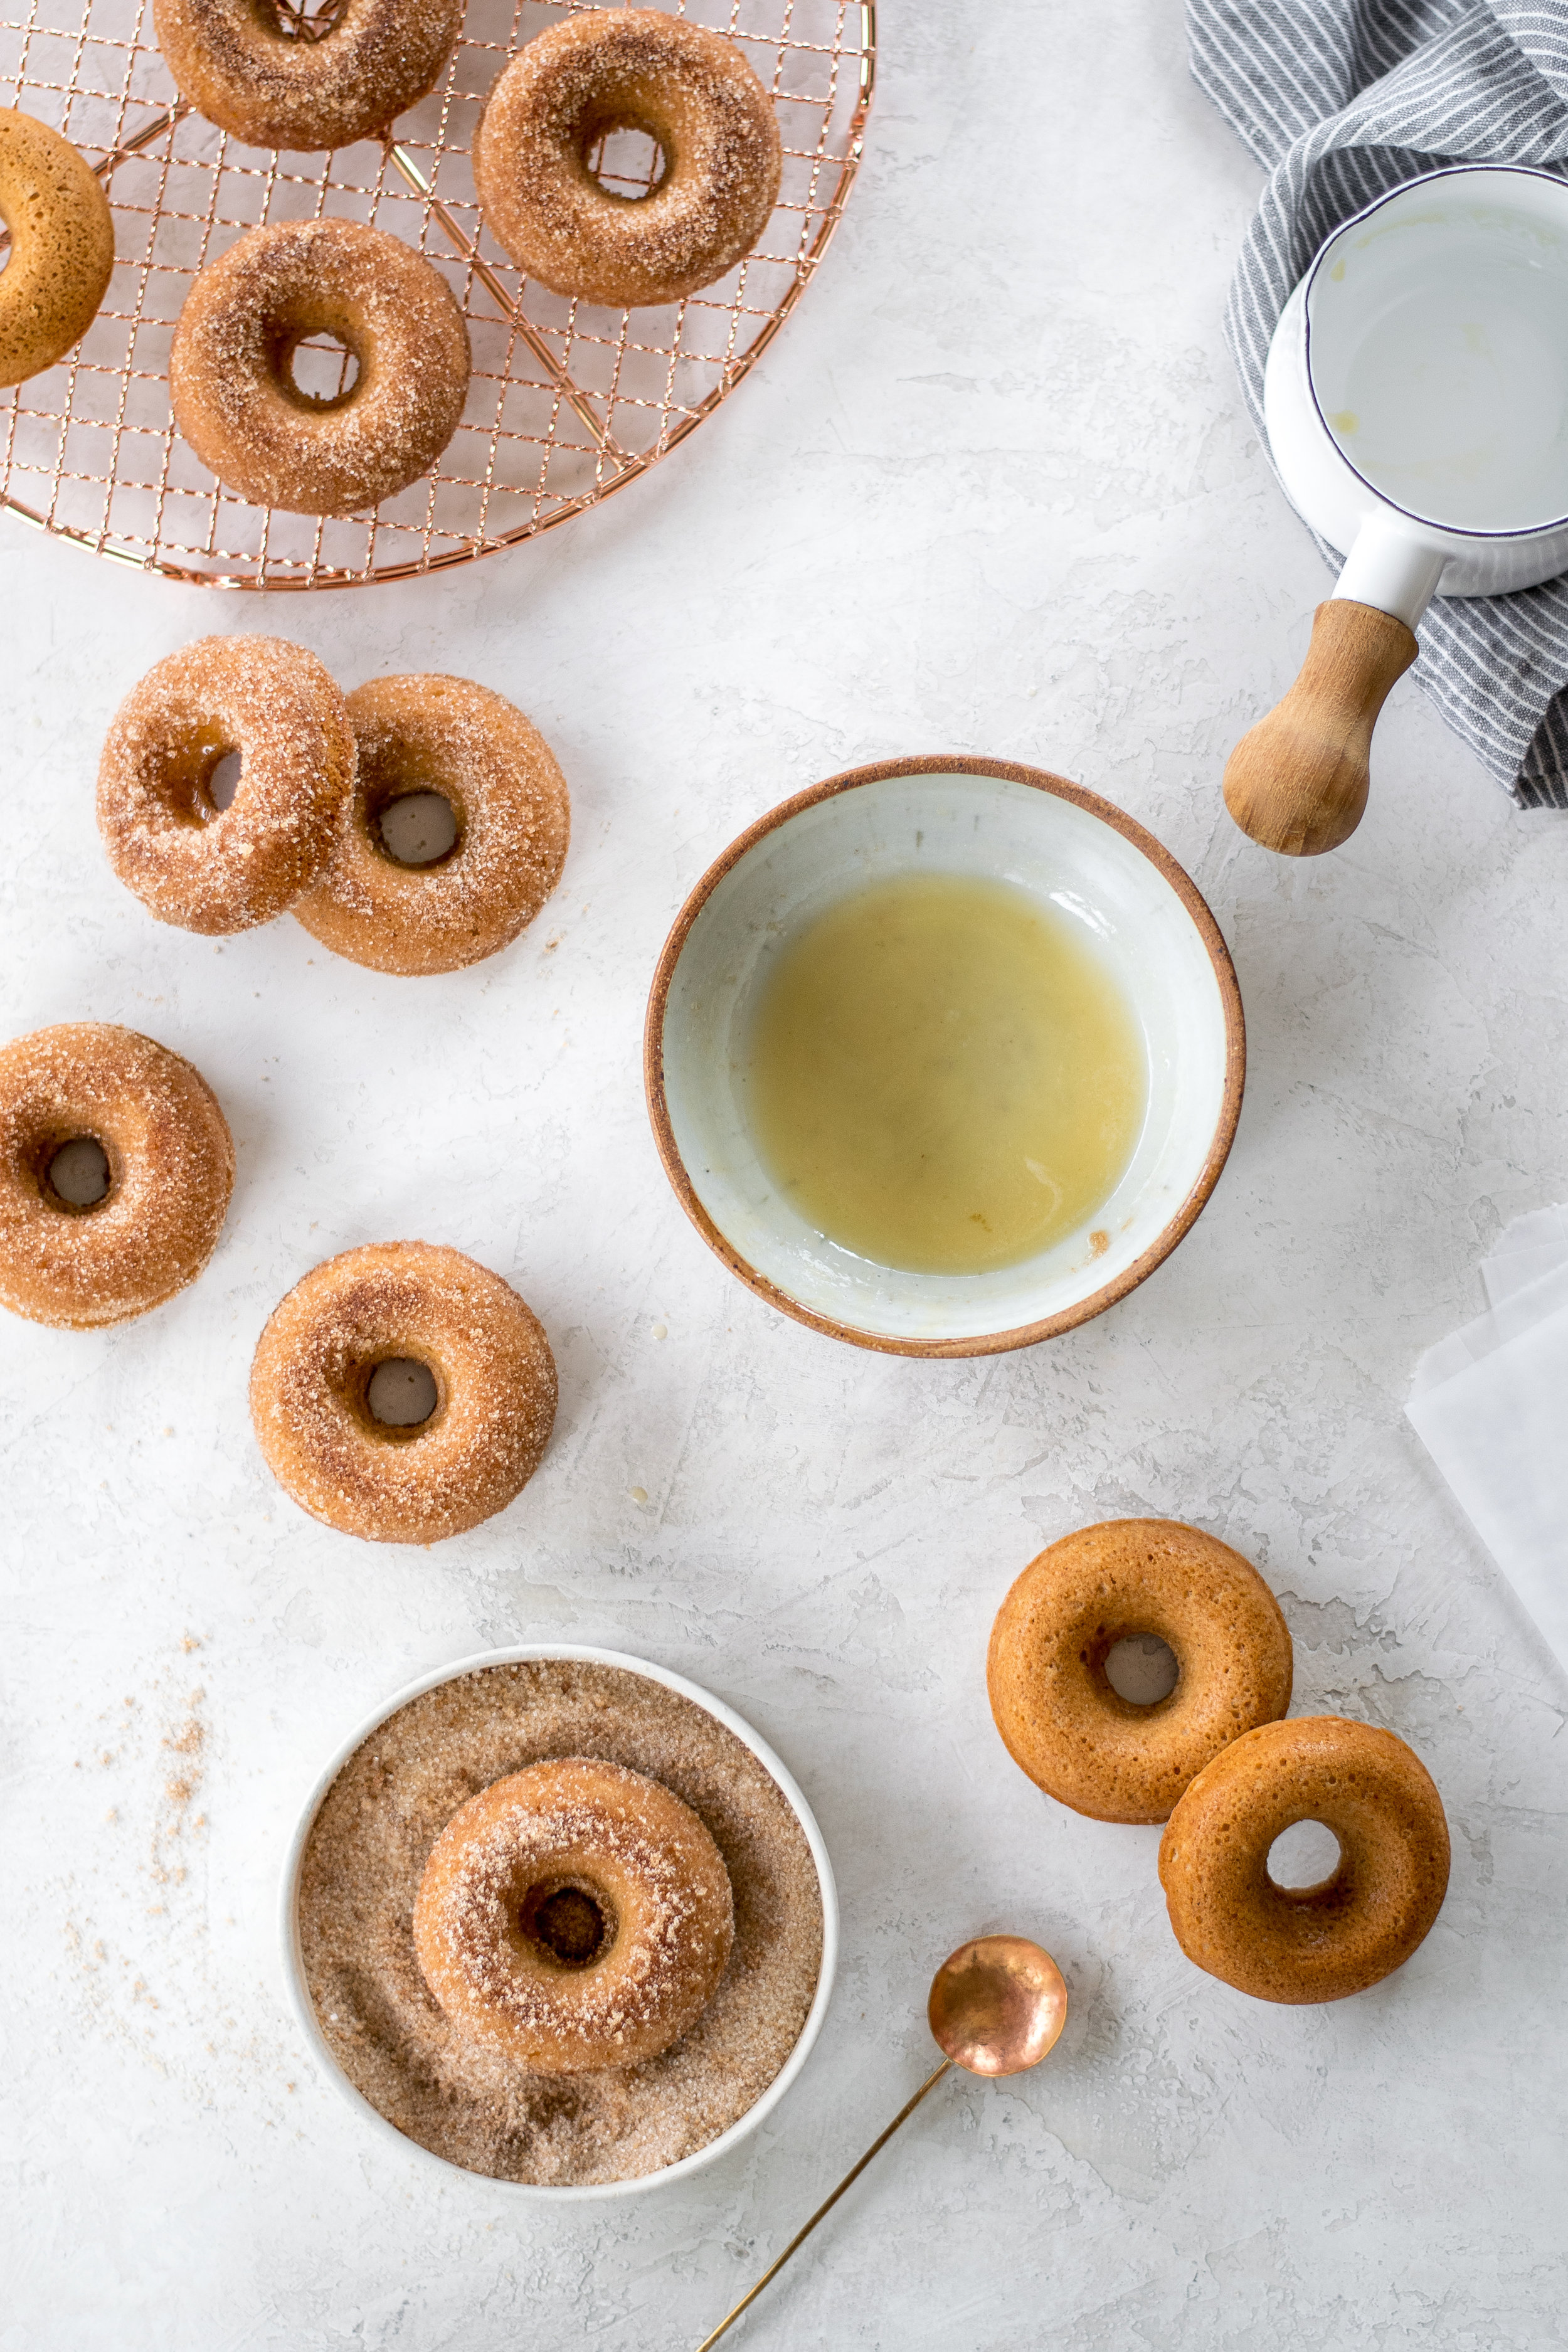 Baked Sour Cream Apple Cider Doughnuts | All Purpose Flour Child